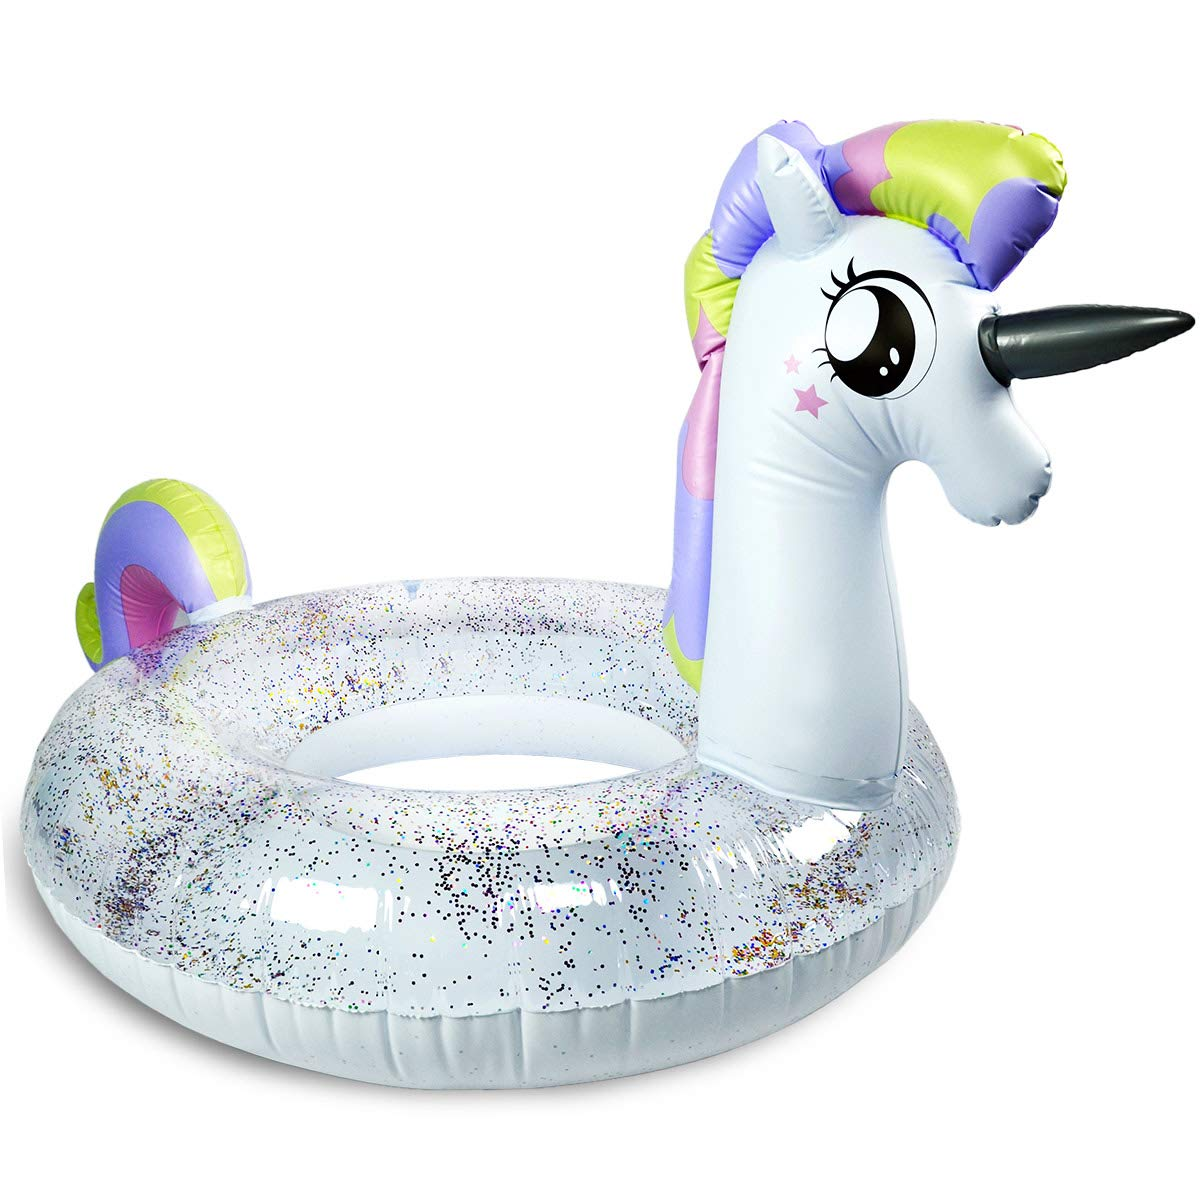 739f4df40de4 Unicorn Pool Floats for Kids - Children's Swim Ring - Inflatable Tube with  Glitters Inside, Small